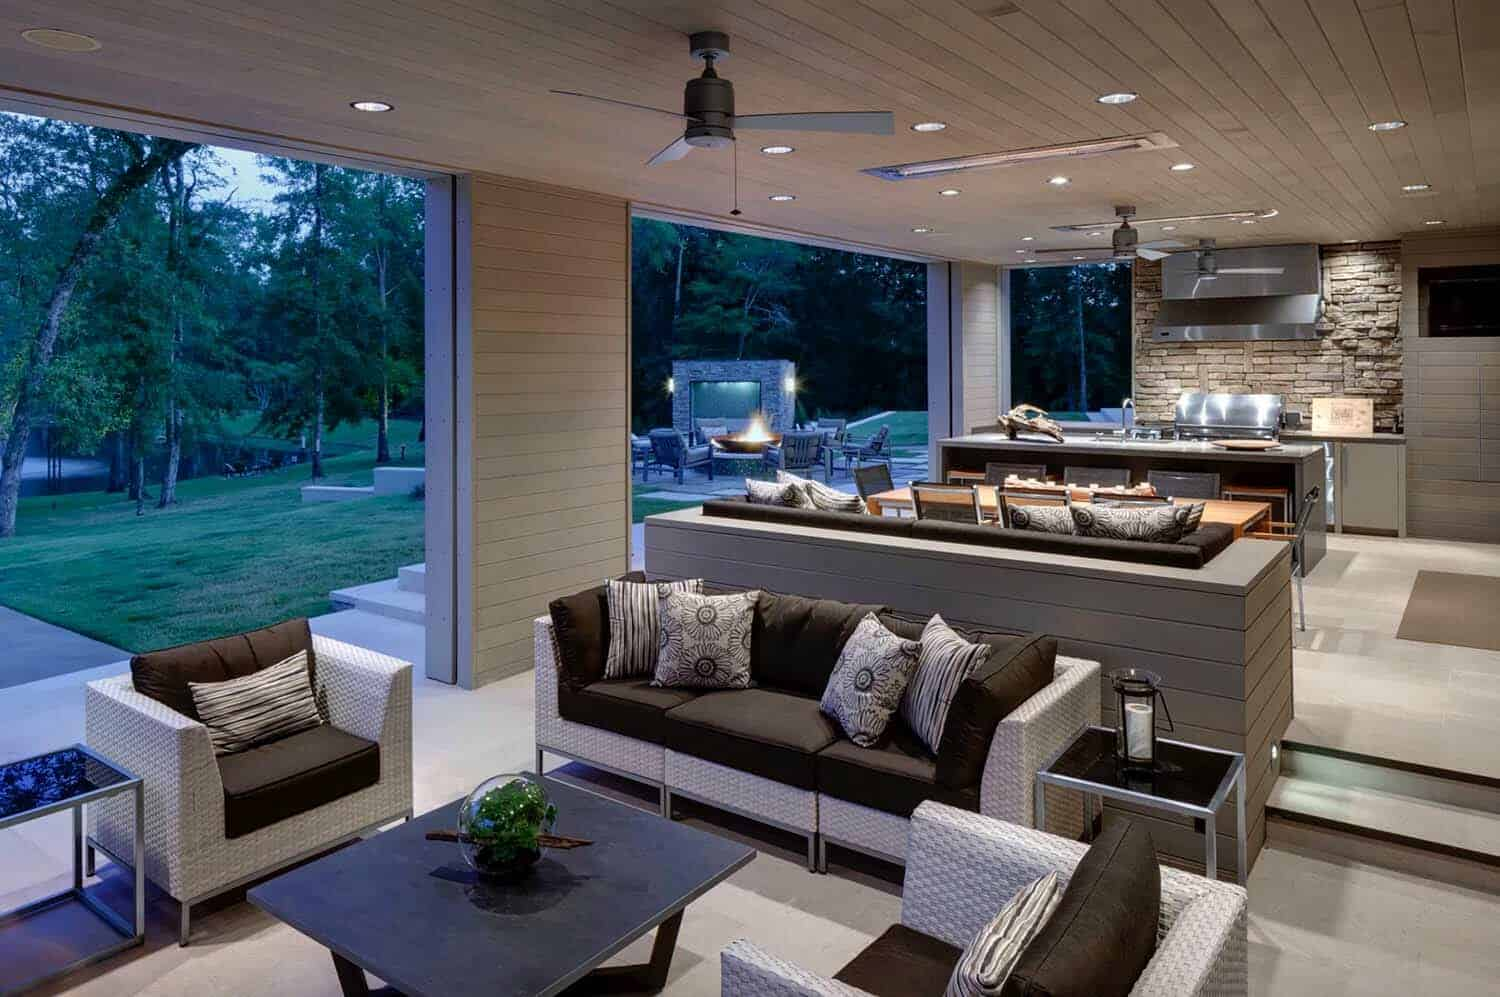 35 Brilliant and inspiring patio ideas for outdoor living ... on Covered Outdoor Living Area id=71176